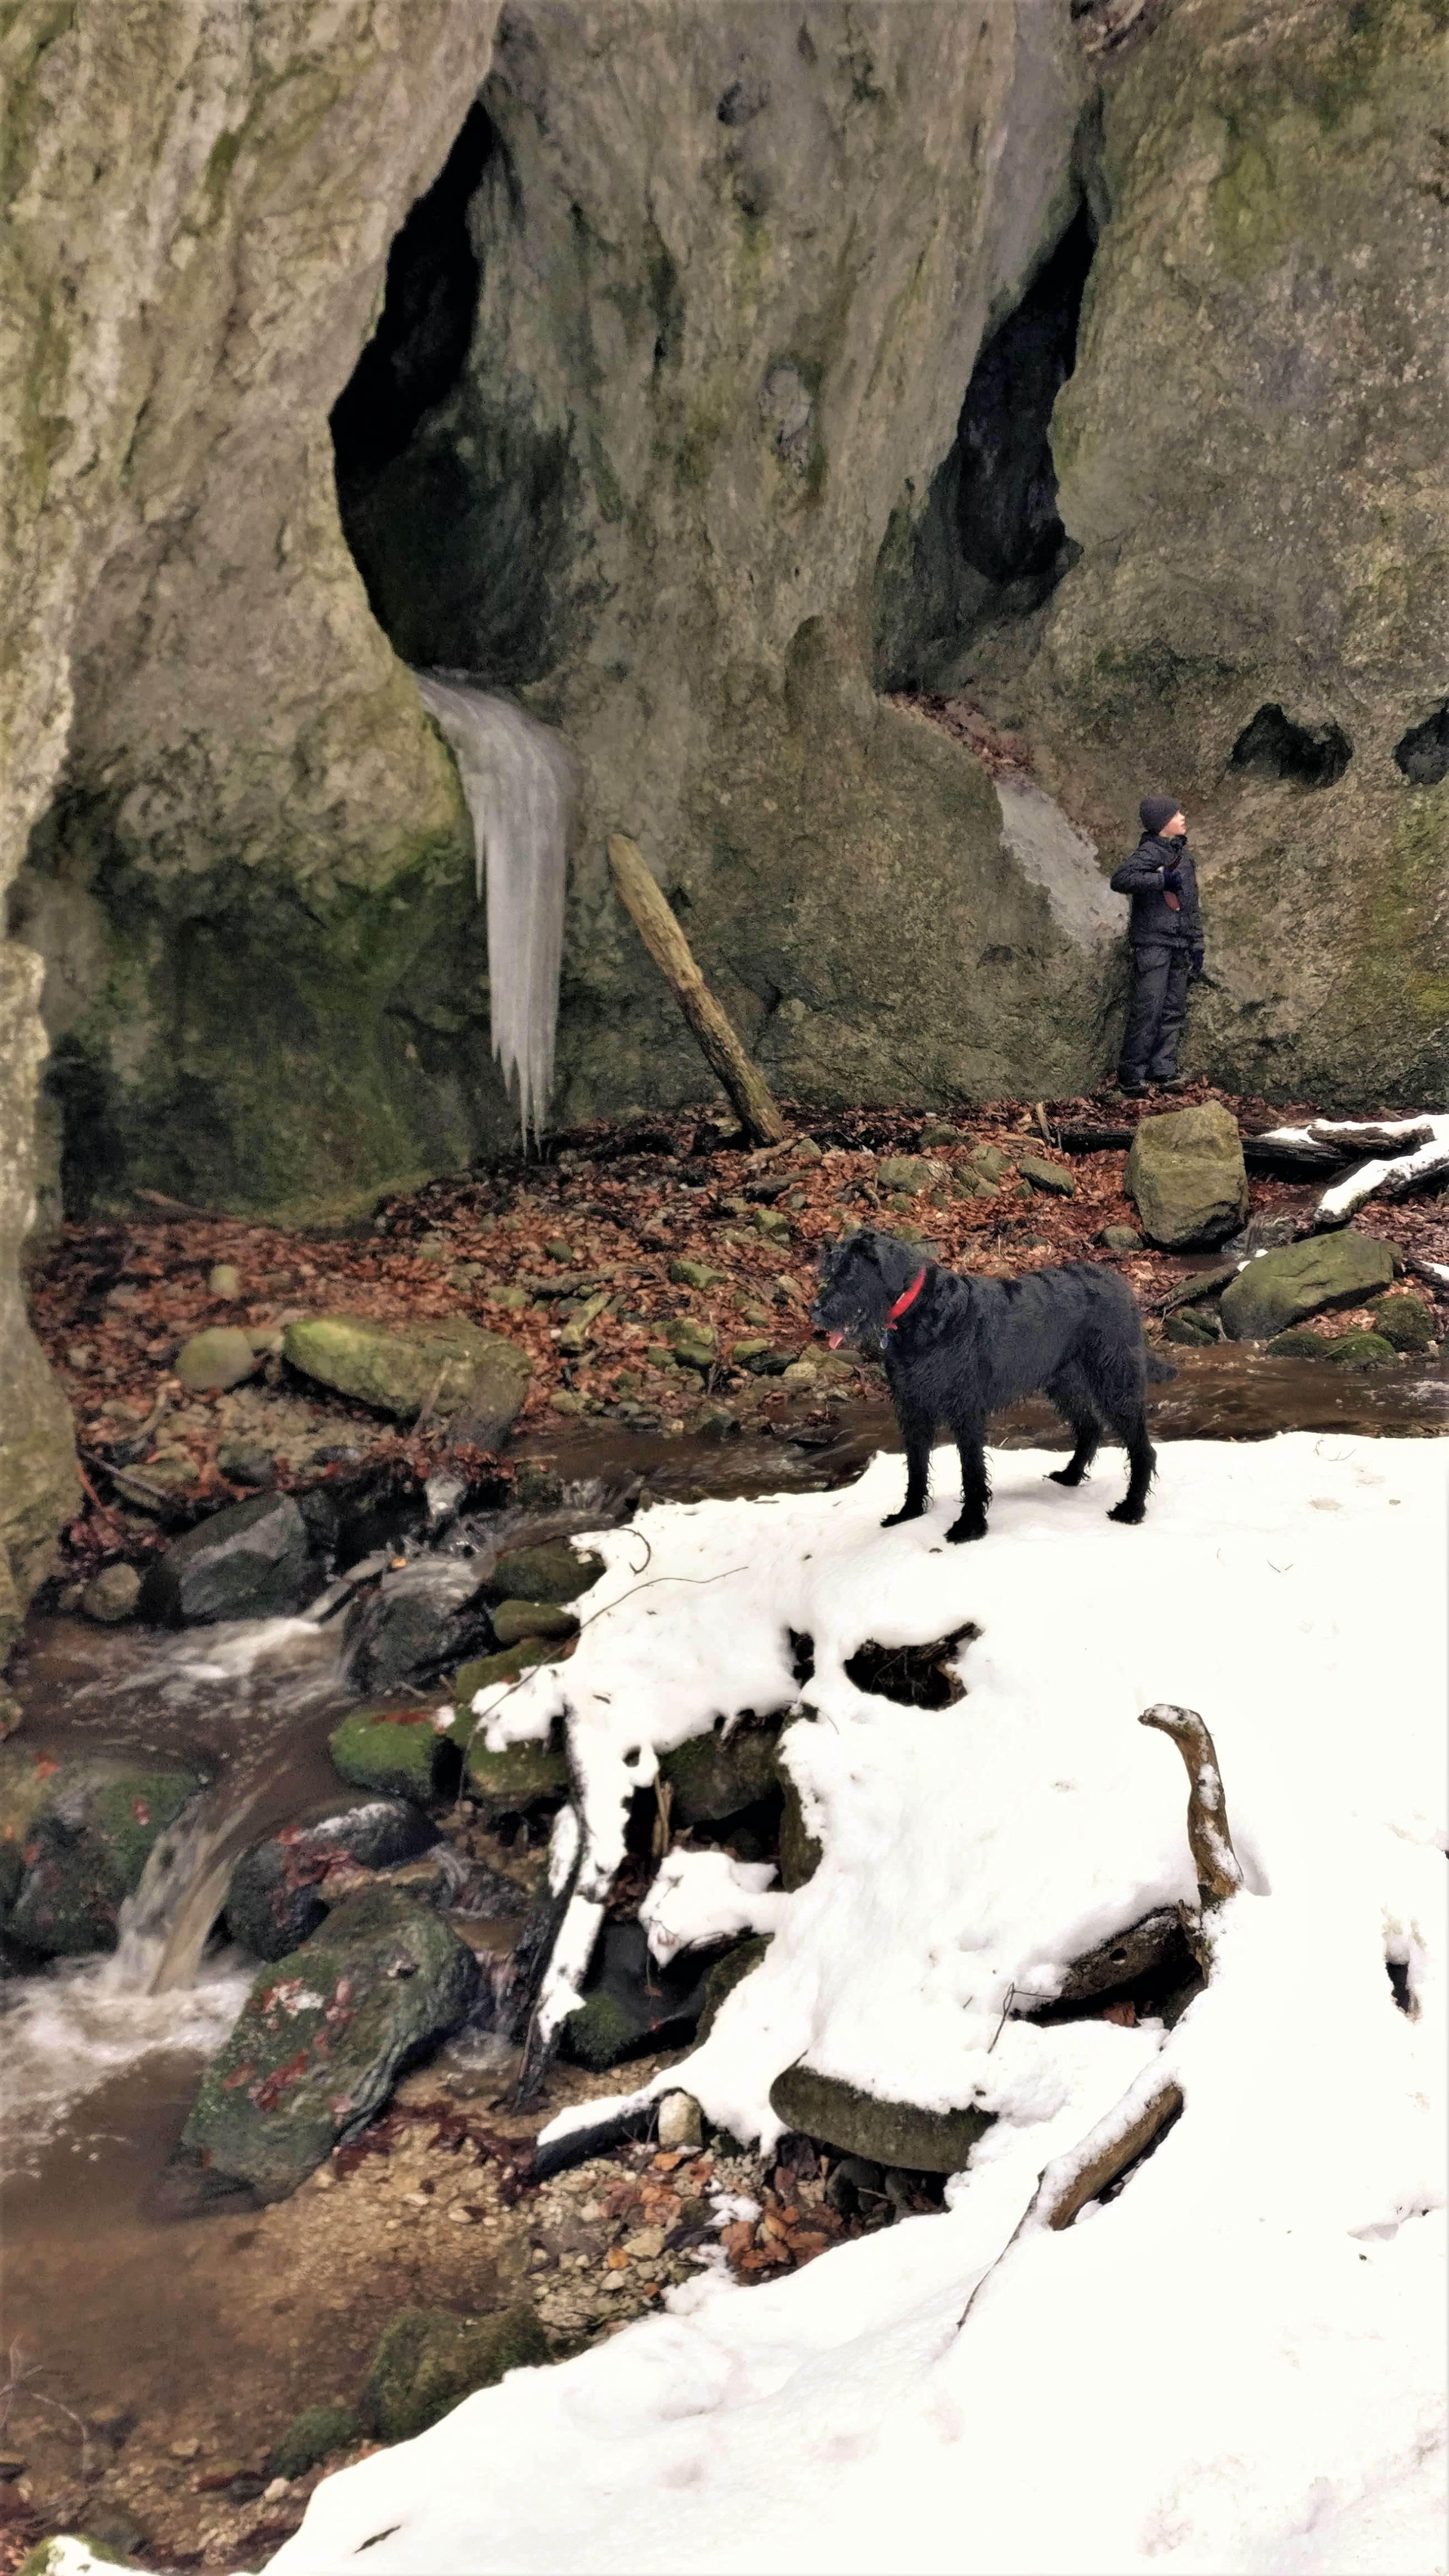 Max and Bona take in the view at a place where the canyon widens out.